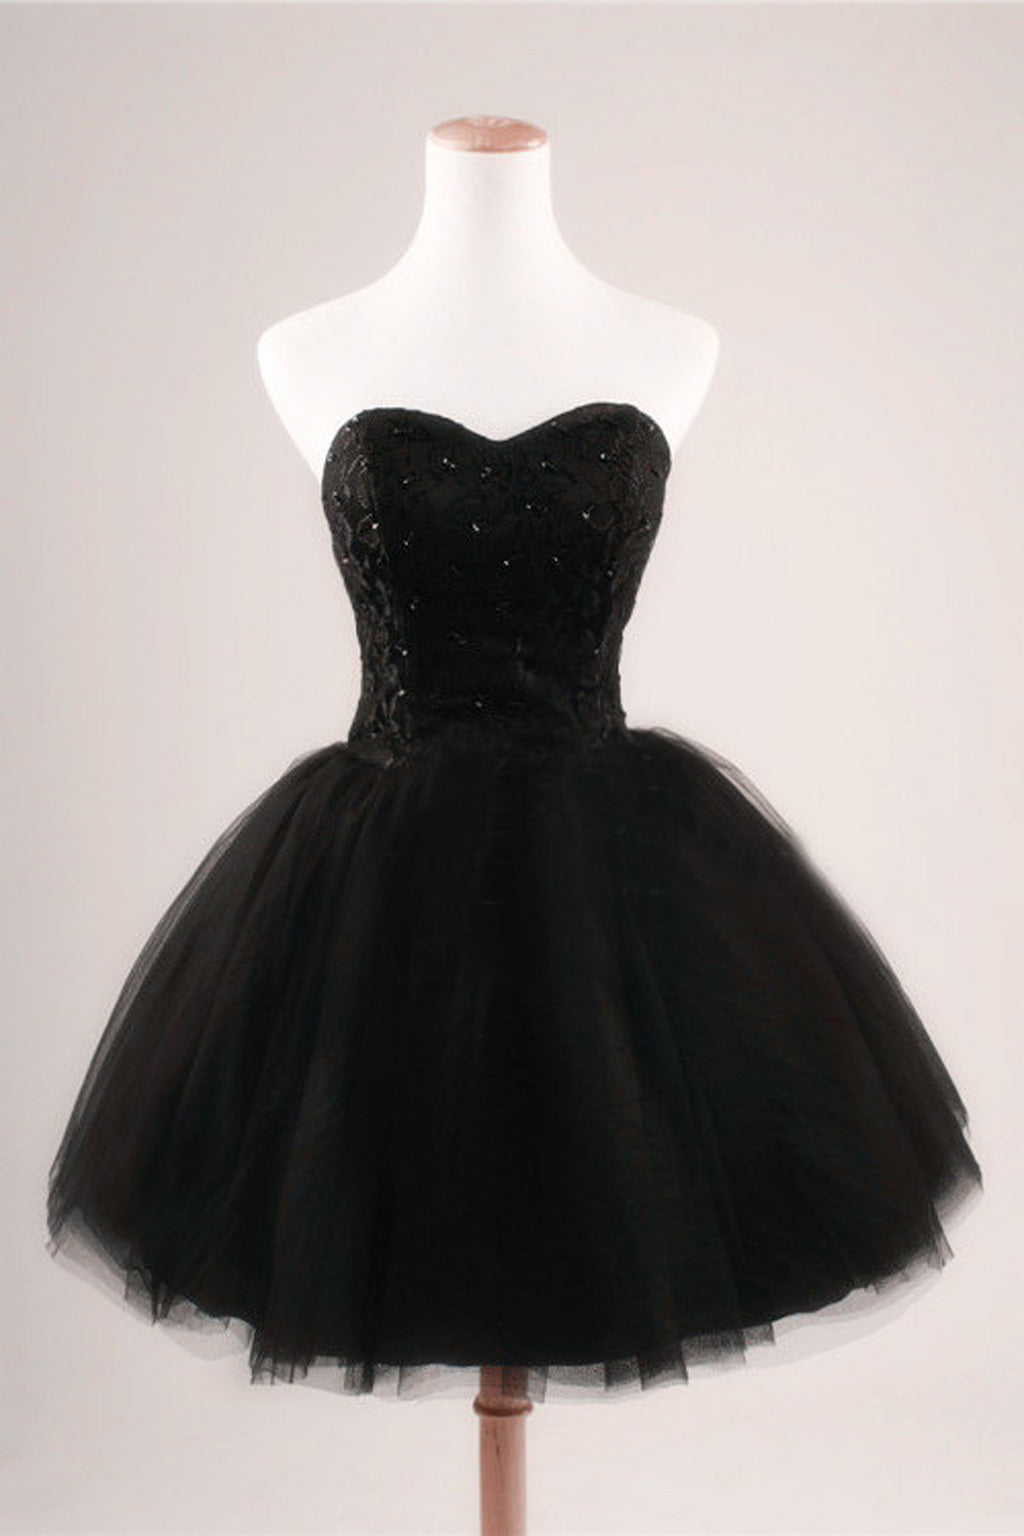 Black Strapless Ball Gown Tulle Homecoming Dresses HG66 - Ombreprom